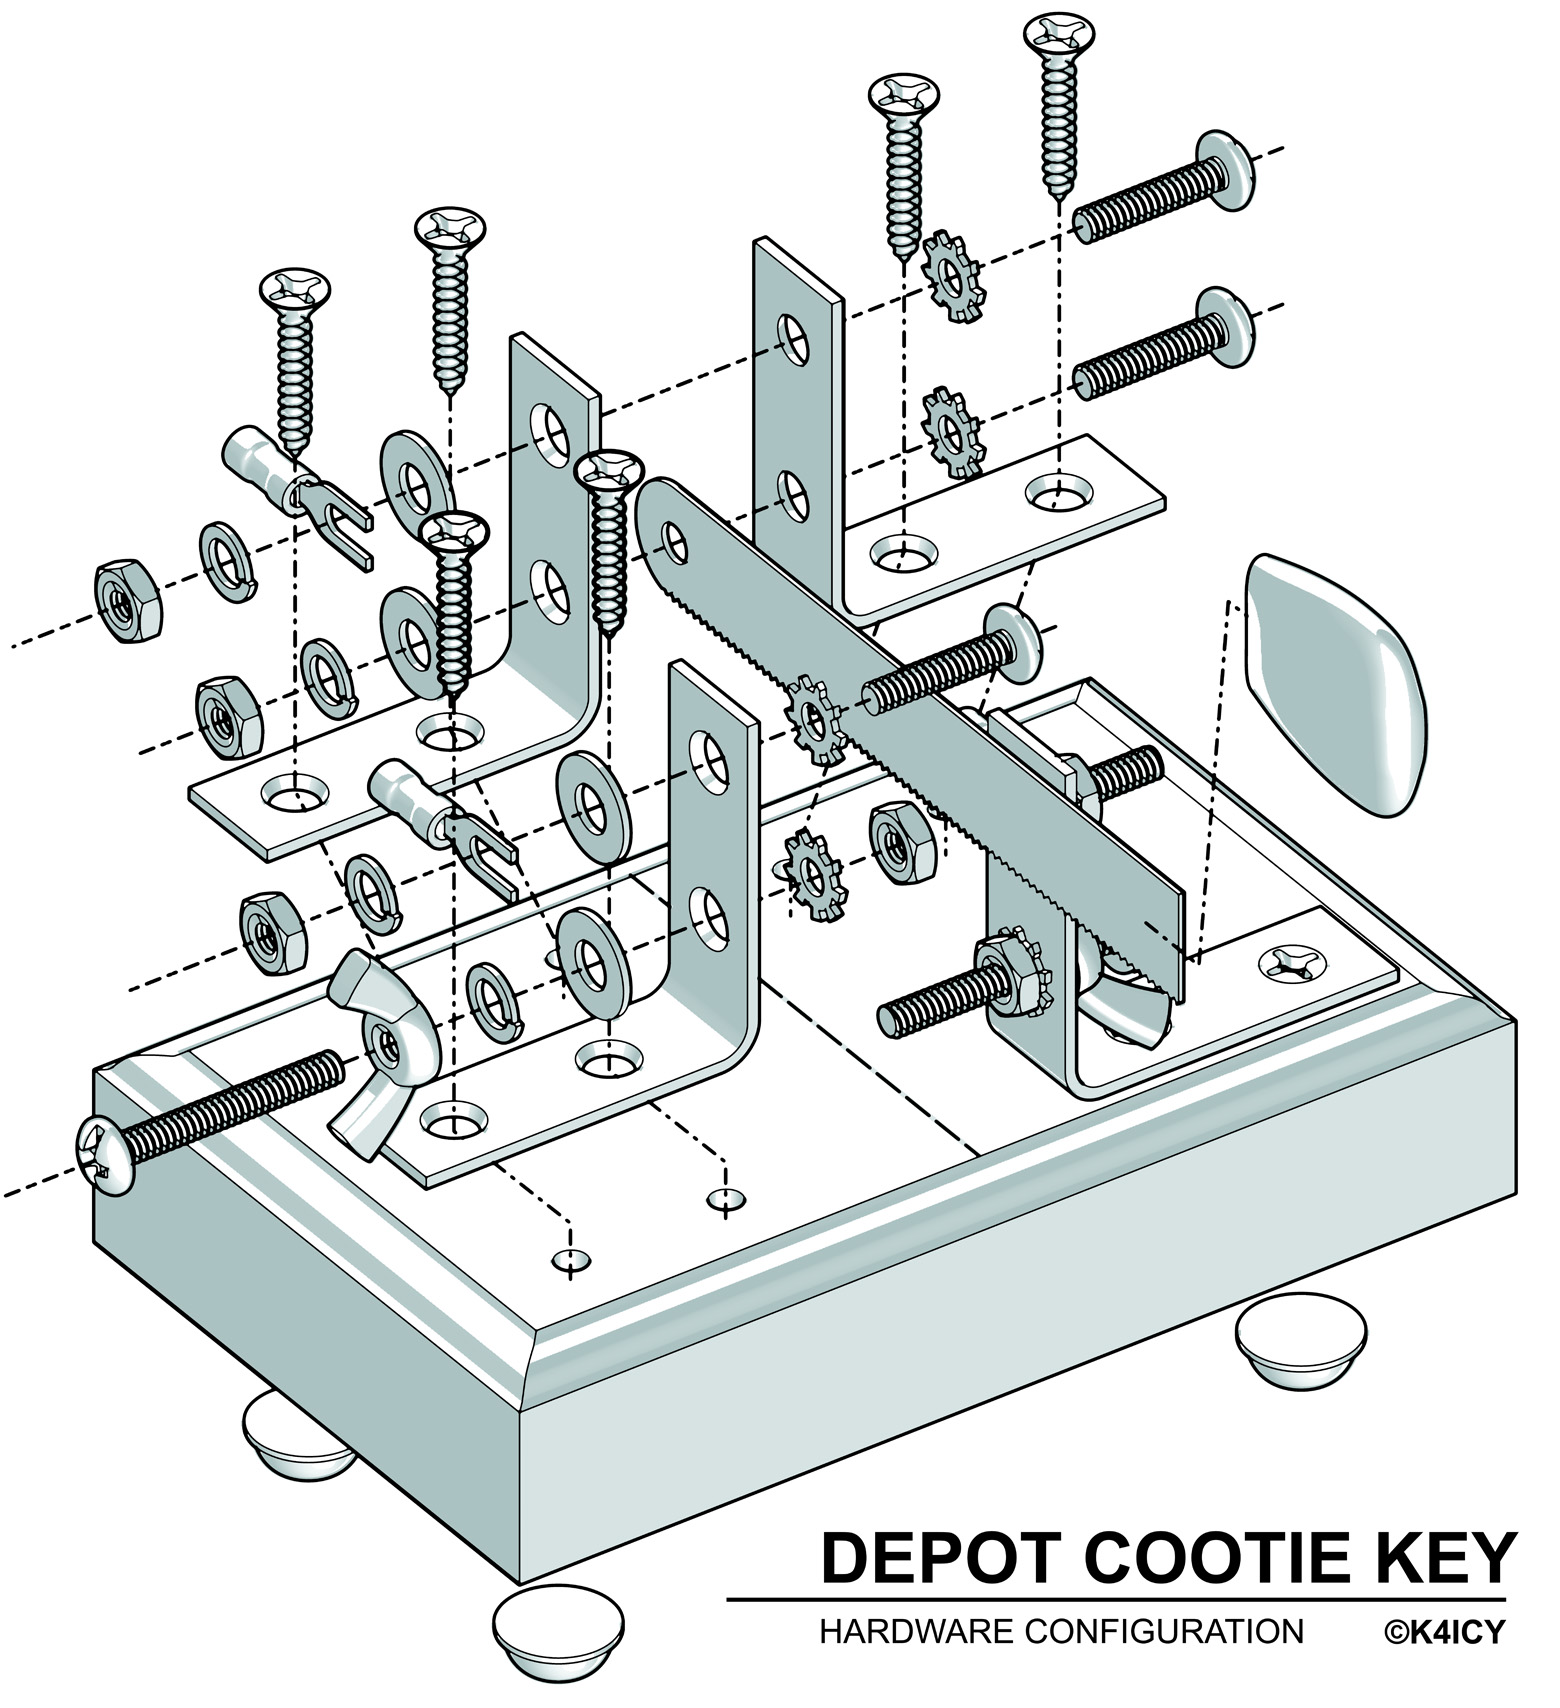 Explded View of Depot Cootie